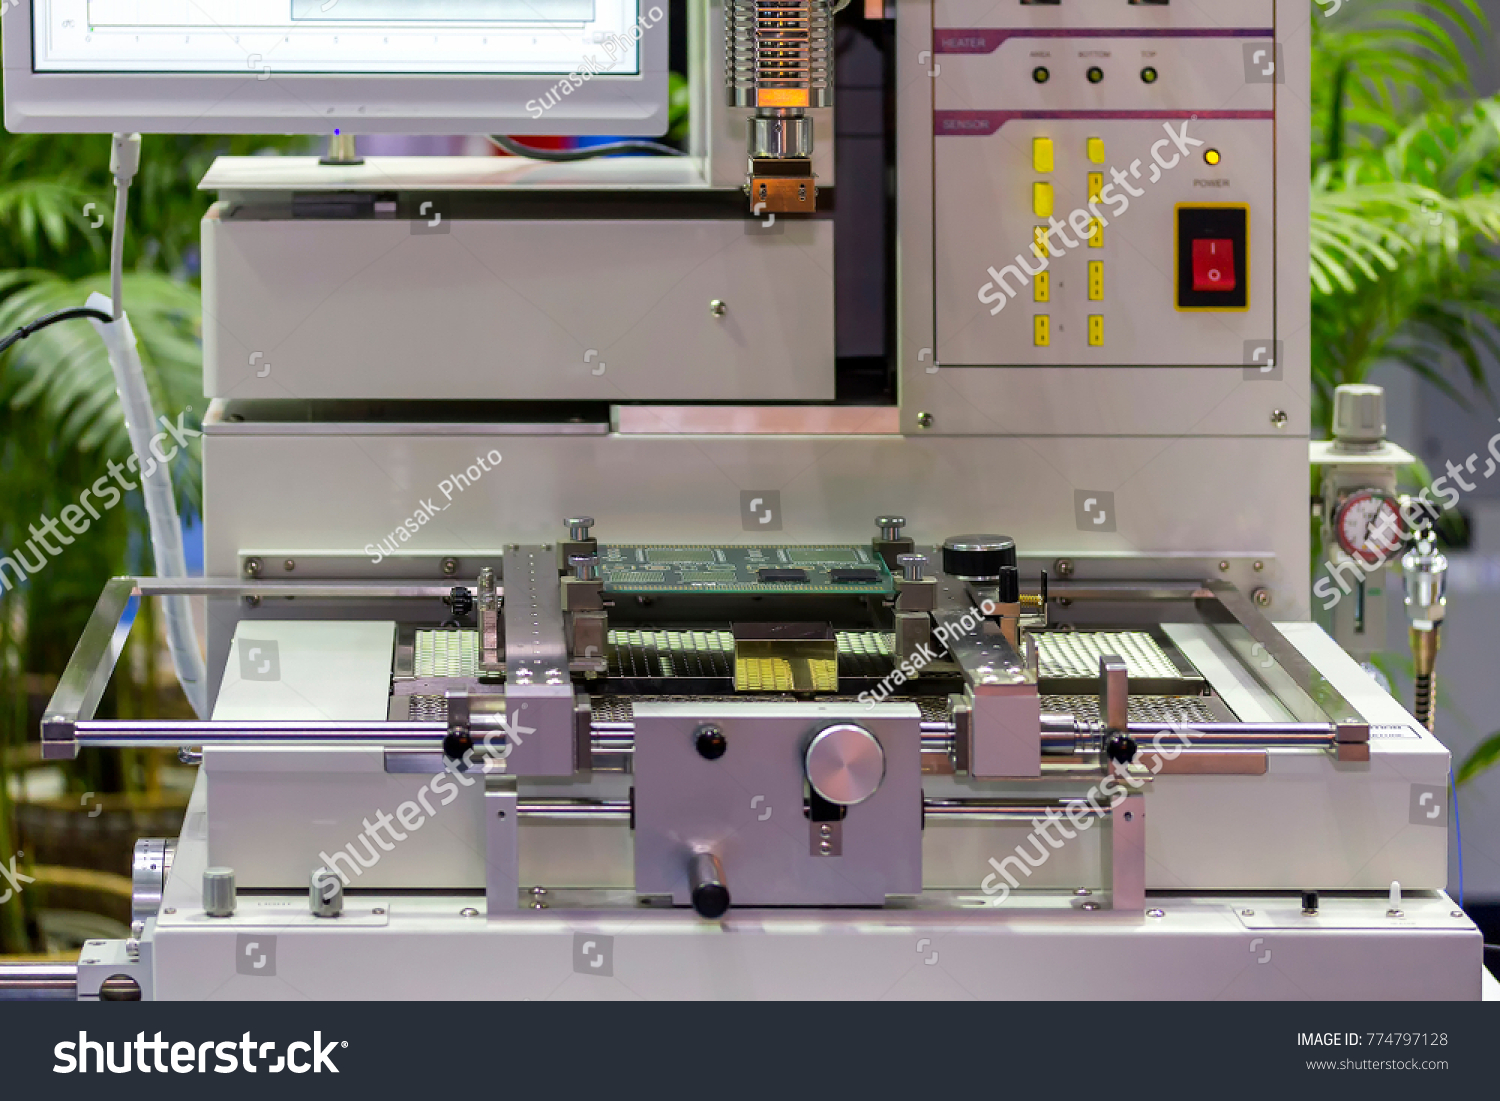 Close Print Circuit Board Pcb On Stock Photo Edit Now 774797128 Stockfoto Printed Used In Industrial Electronic Up Table Jig Of Ic Placer Automatic Pick